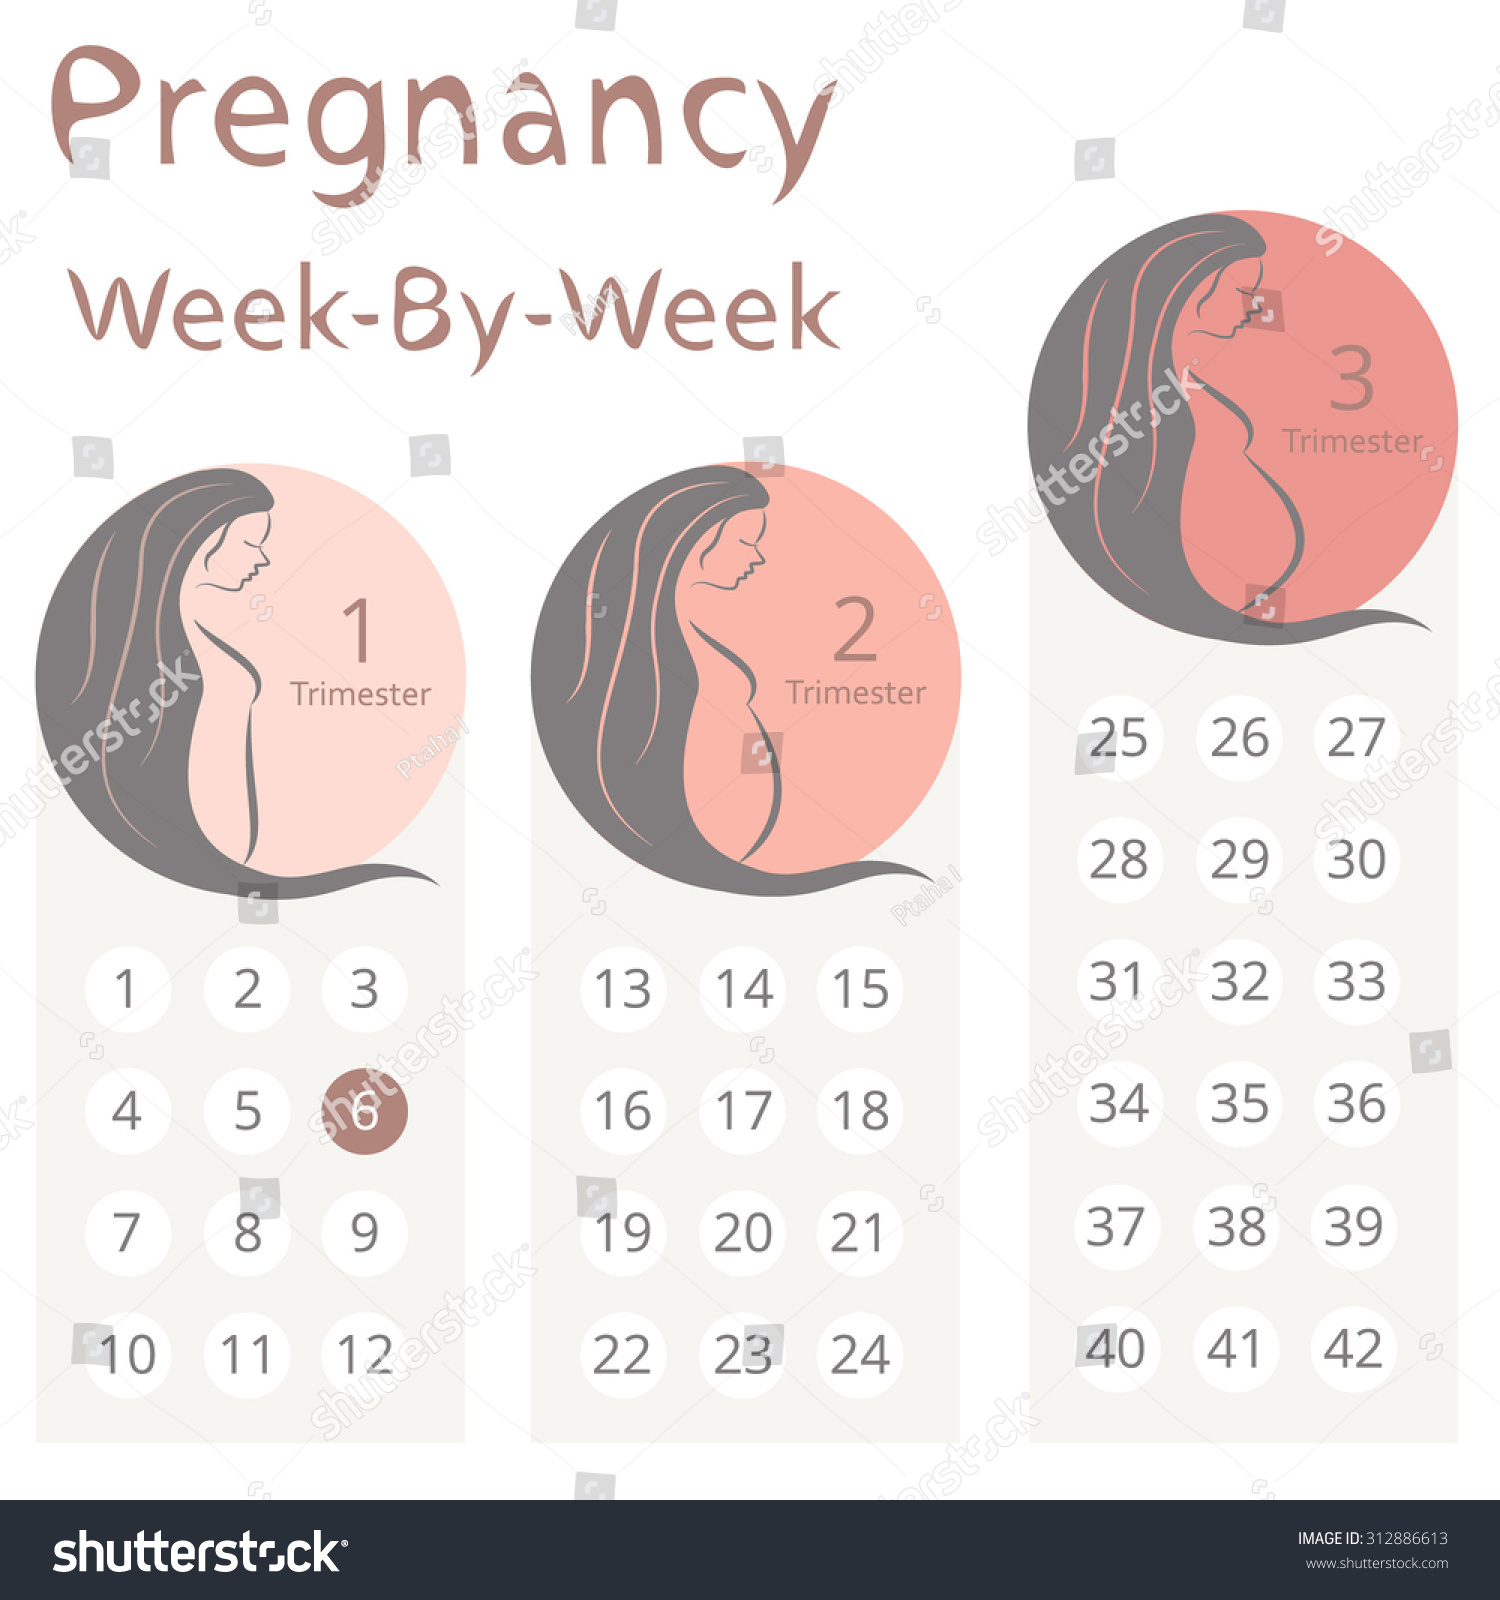 Pope Pregnant calenders Youthful